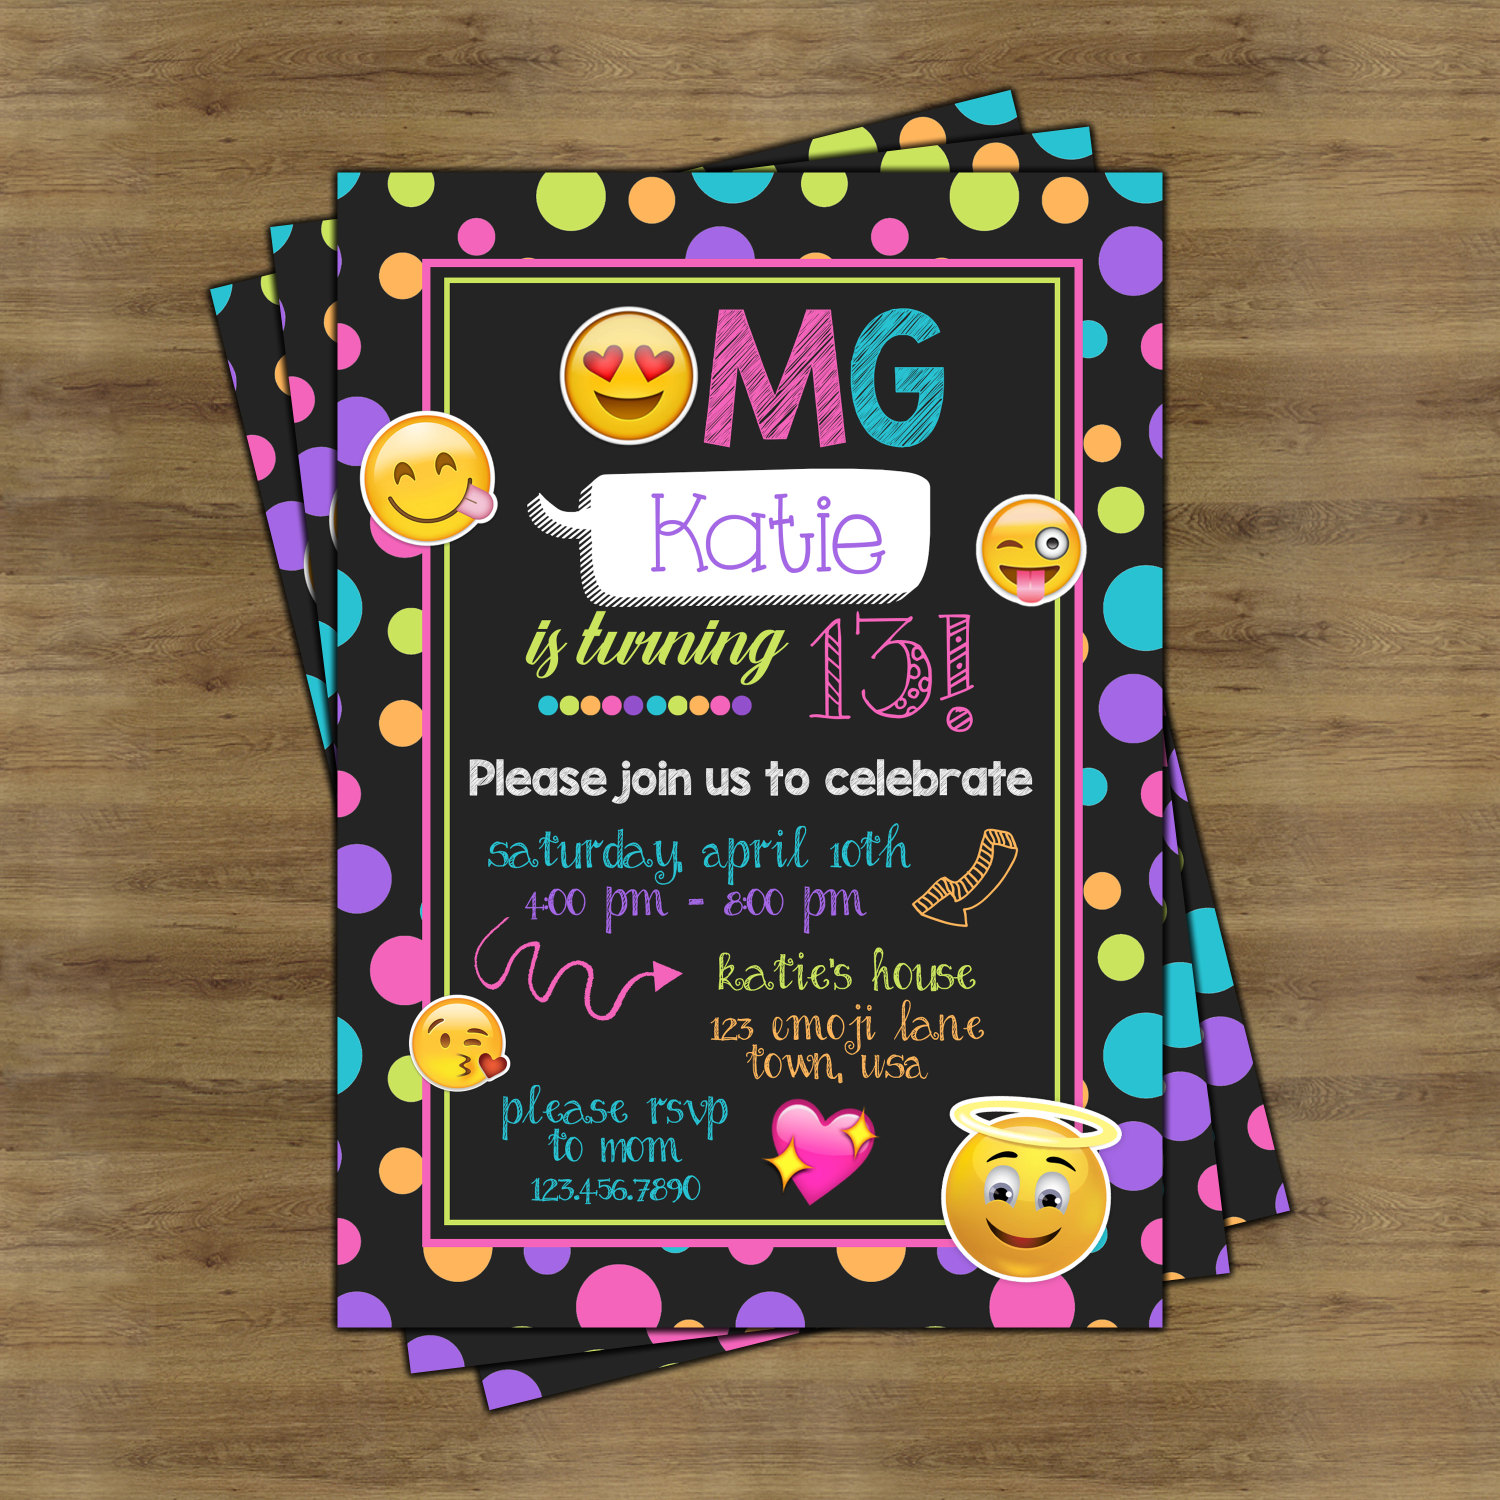 It Will Surely Excite All The Guests And Birthday Person To Fullest Invitations Would Build Up Emoji Themed Party